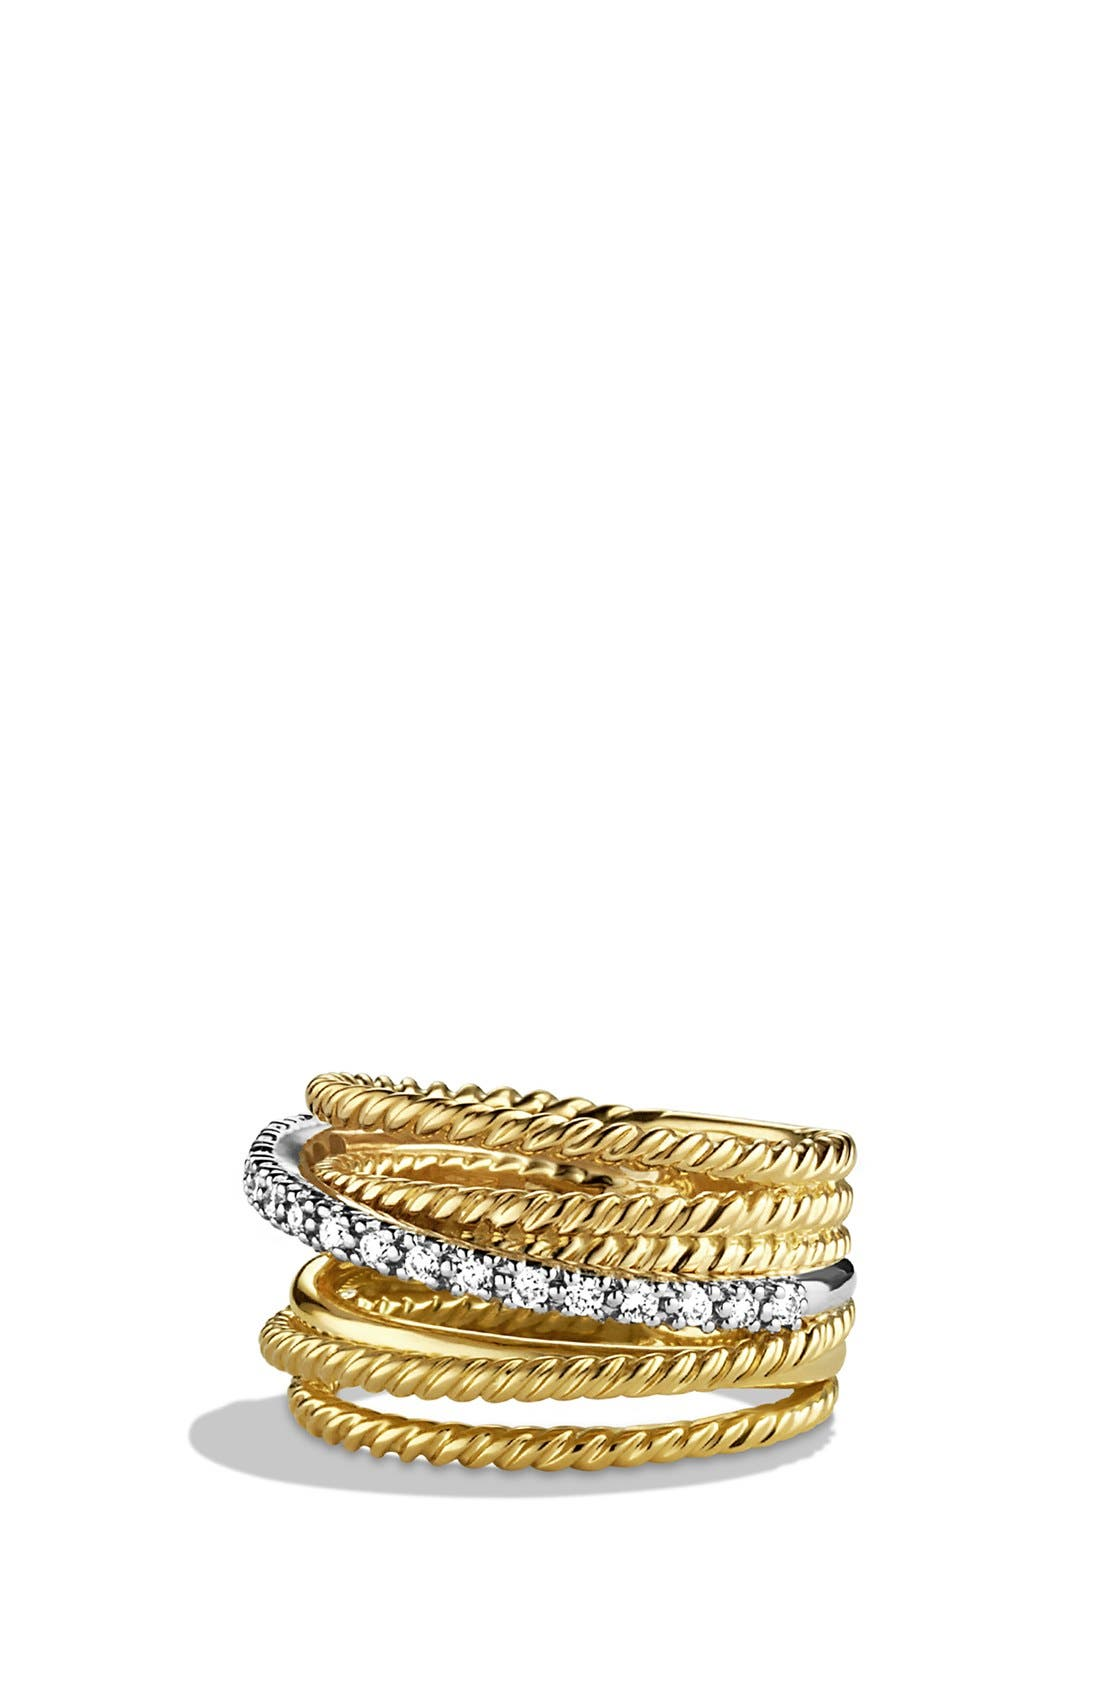 David Yurman 'DY Crossover' Ring with Diamonds in Gold